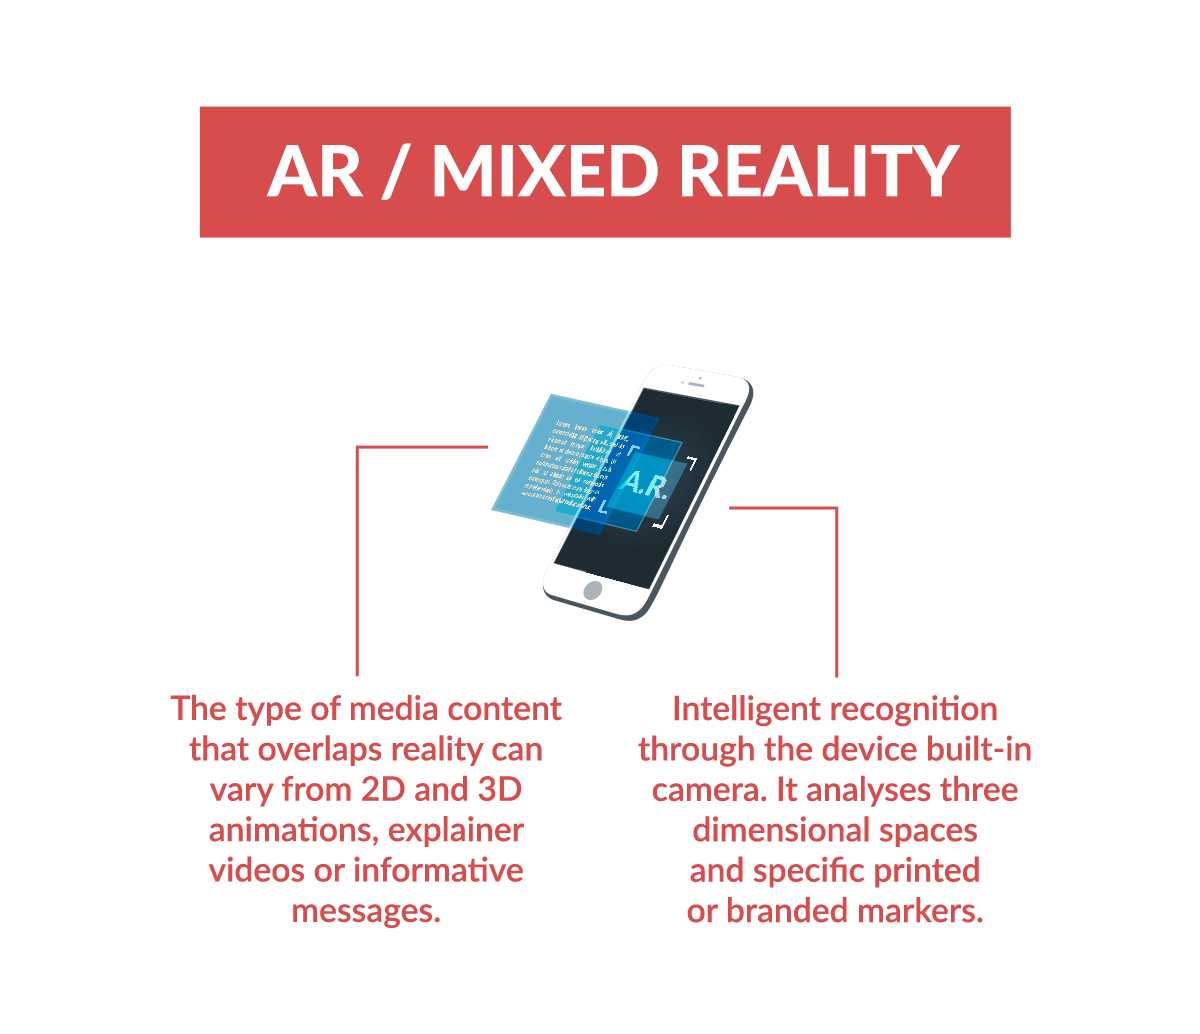 AR/Mixed Reality